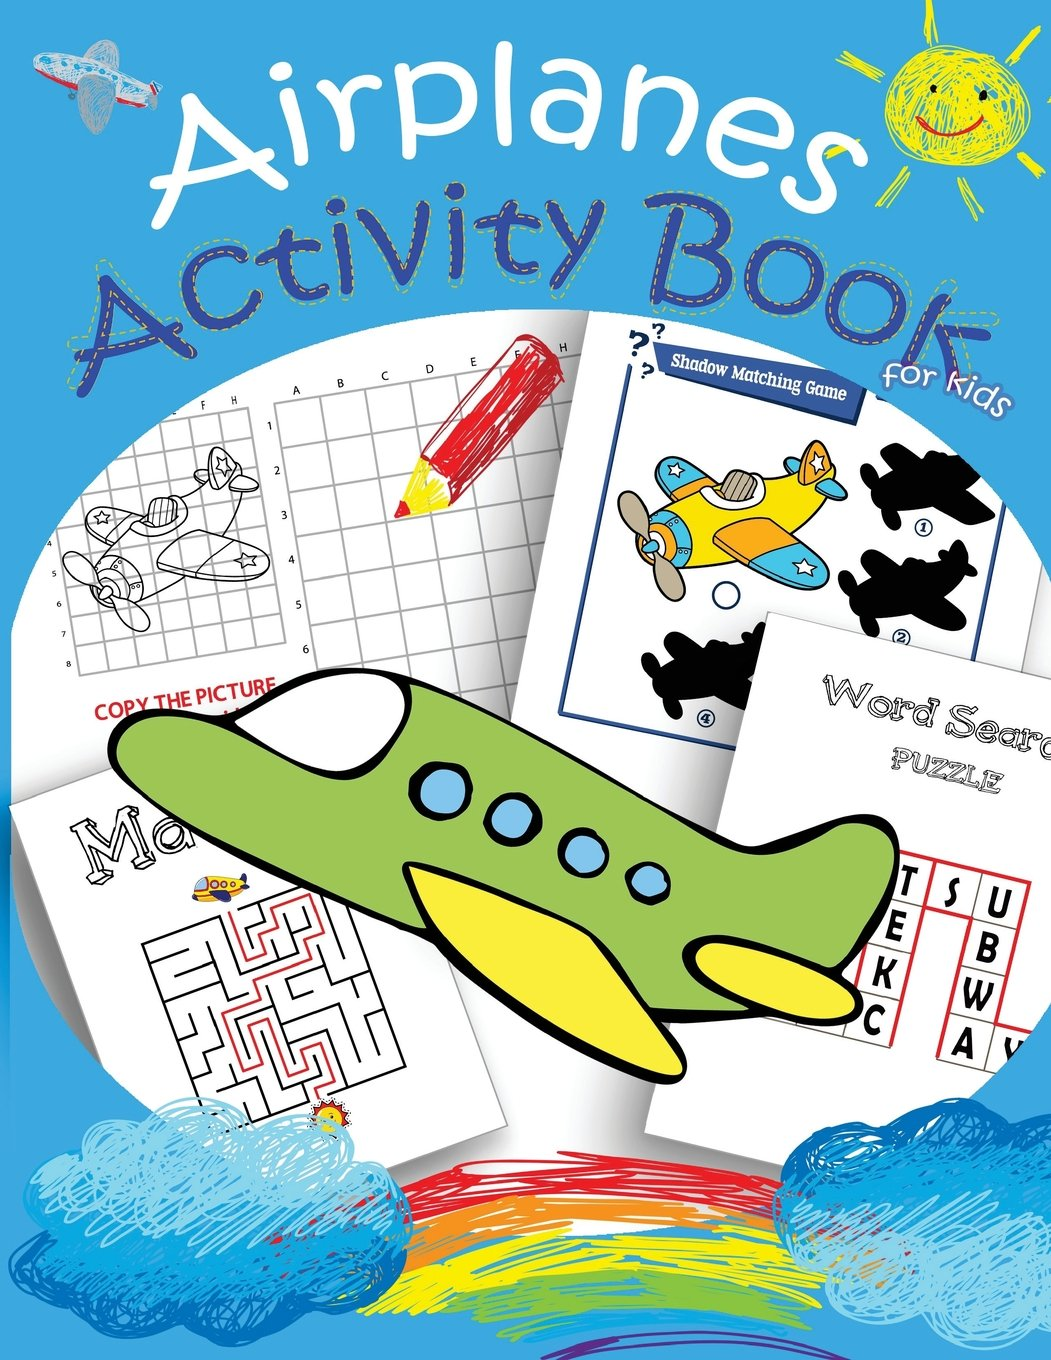 Airplanes Activity Book For Kids Mazes Dot To Dot Coloring Draw